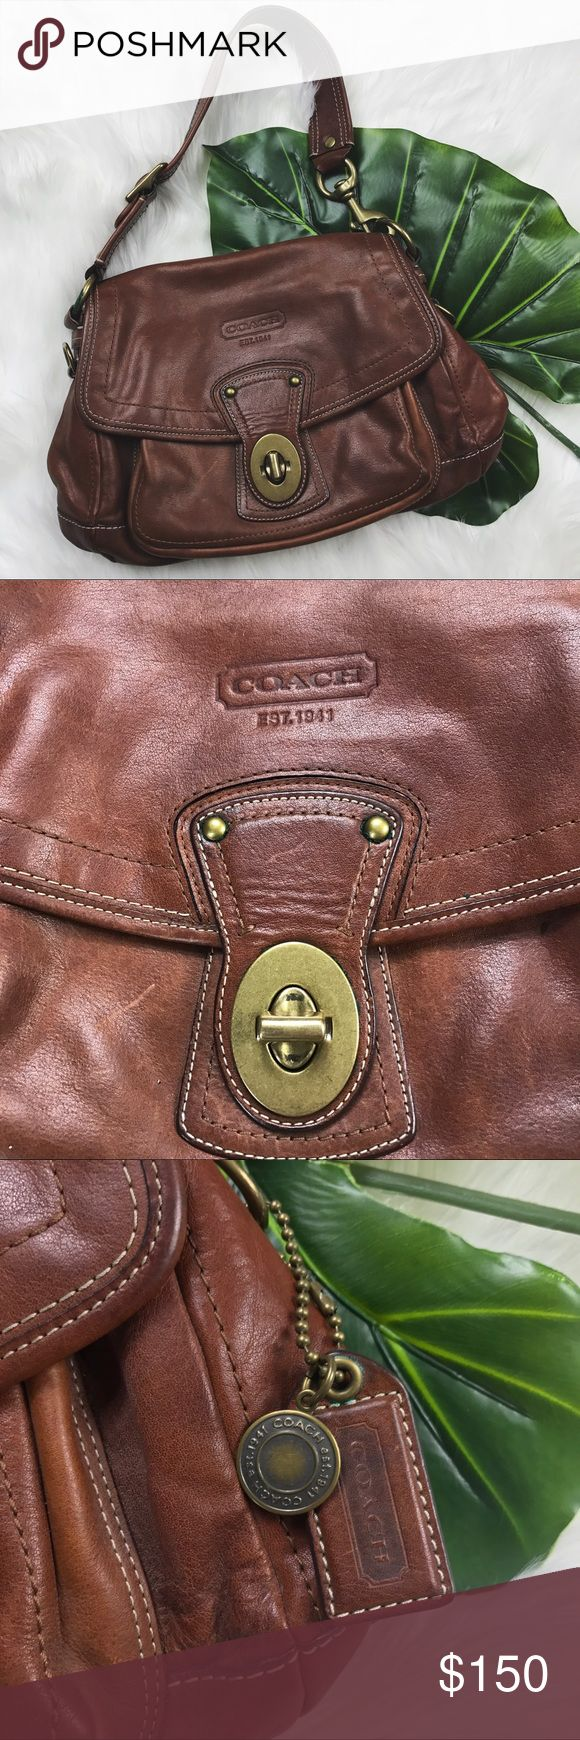 "RARE Coach 65th Anniversary Legacy Shoulder Bag This Coach purse is made of heavy quality leather in the shade ""whiskey"". Shows light signs of wear on exterior & some discoloration that might be able to be spot cleaned. Coach Bags Shoulder Bags"